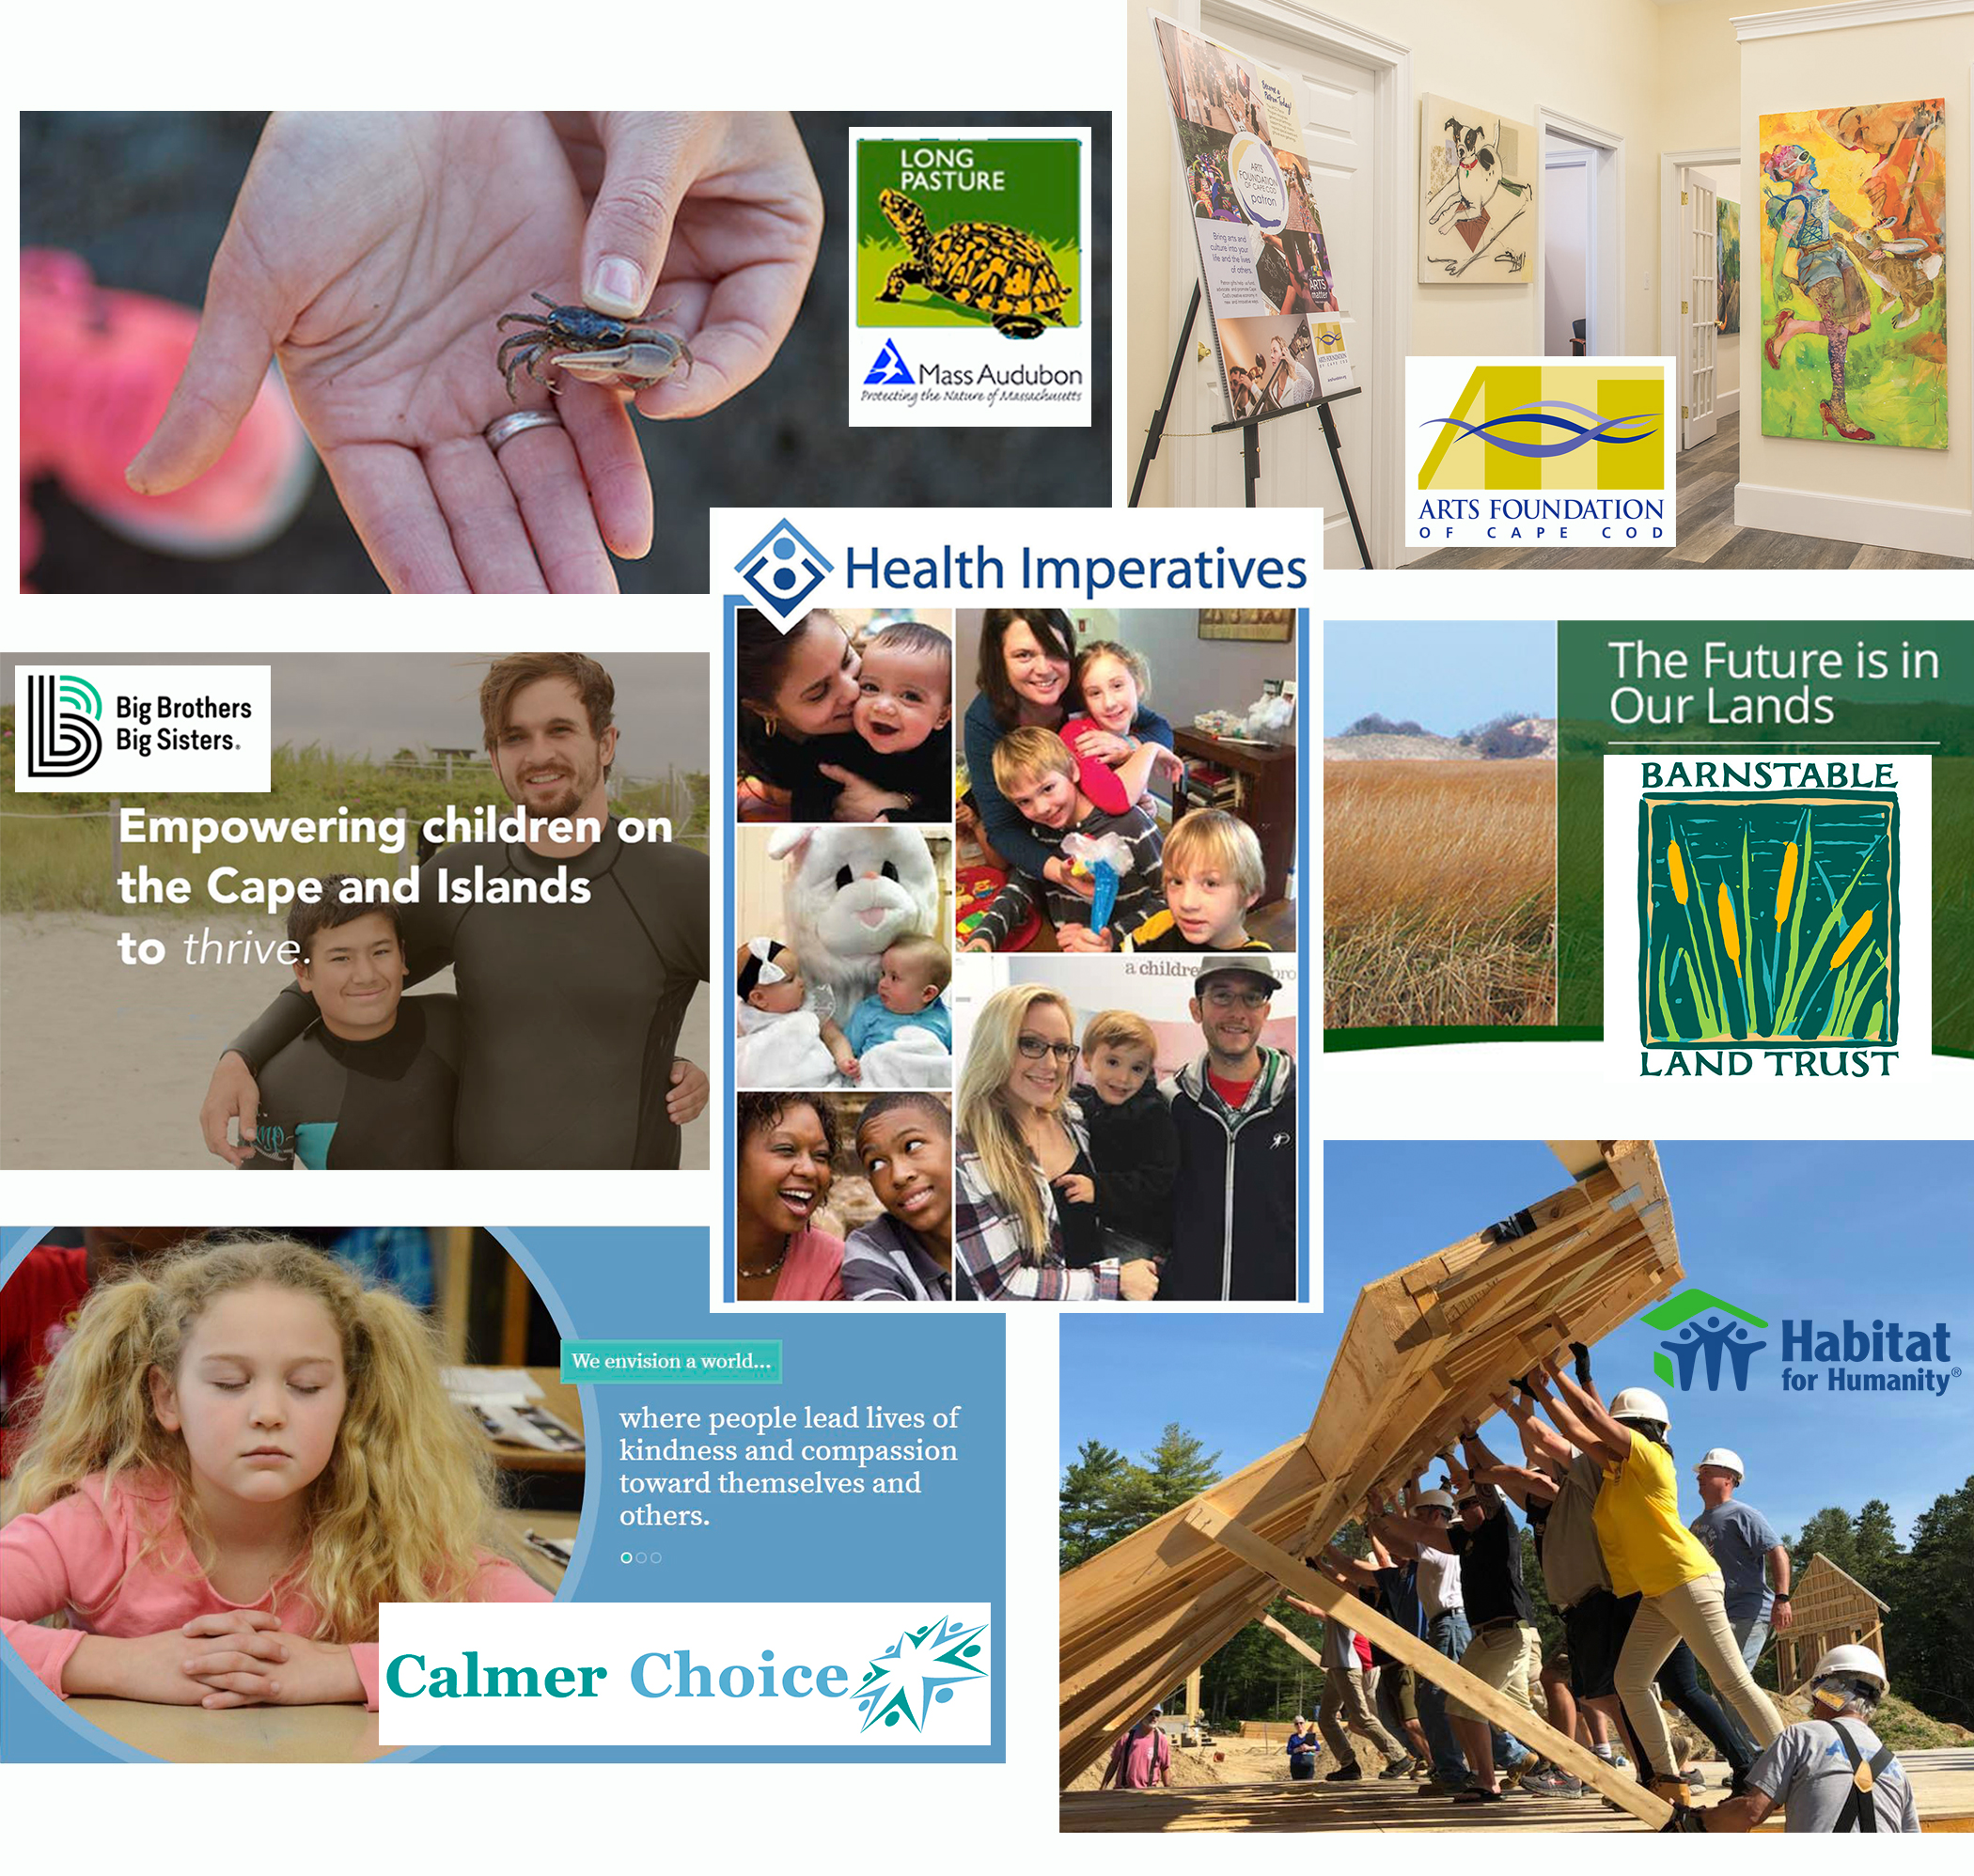 foundation grants collage of signature images representing beneficiary organizations